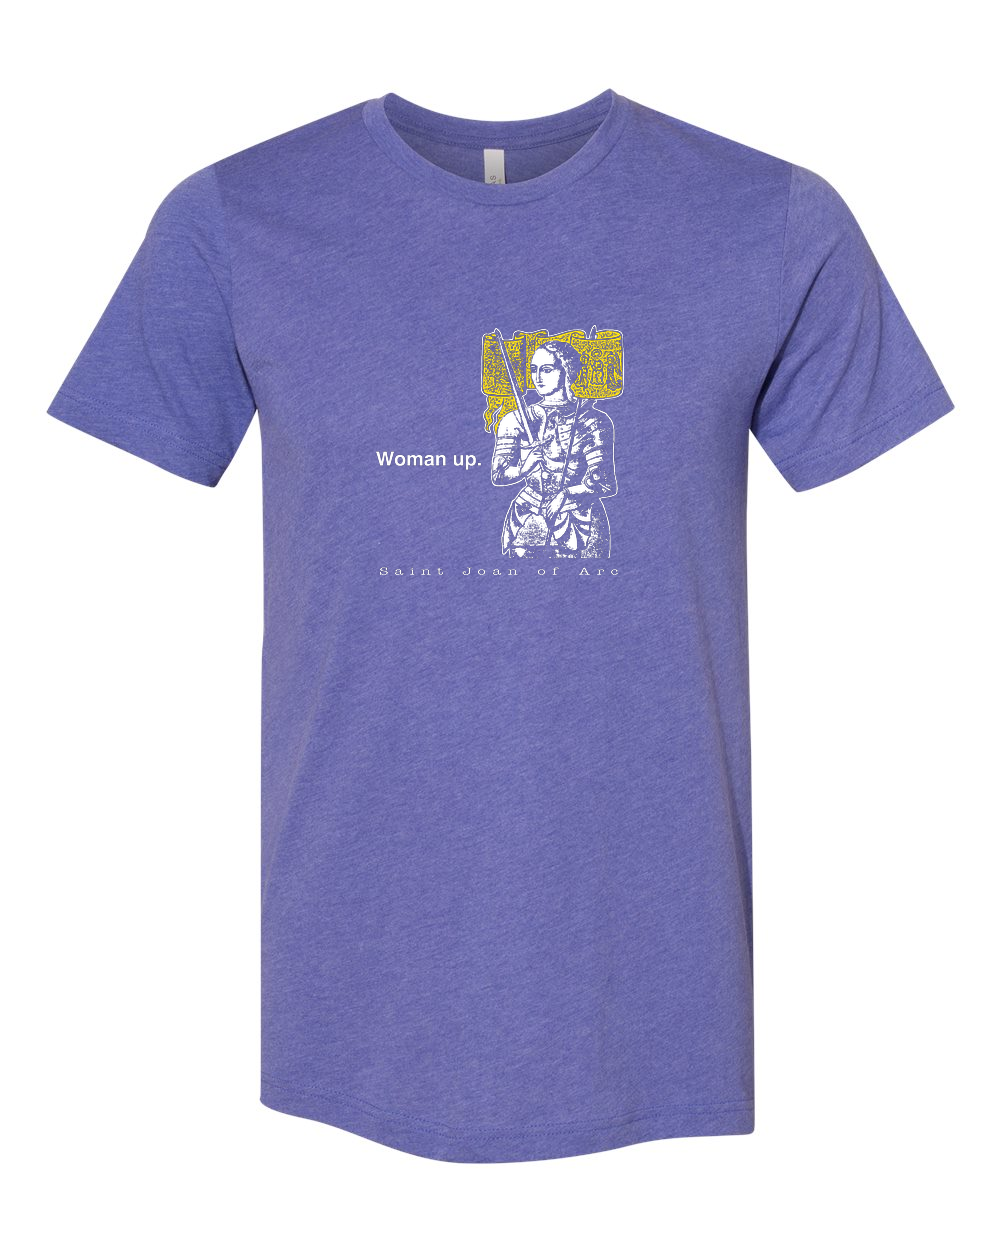 Woman Up - St. Joan of Arc T Shirt - That One Sheep